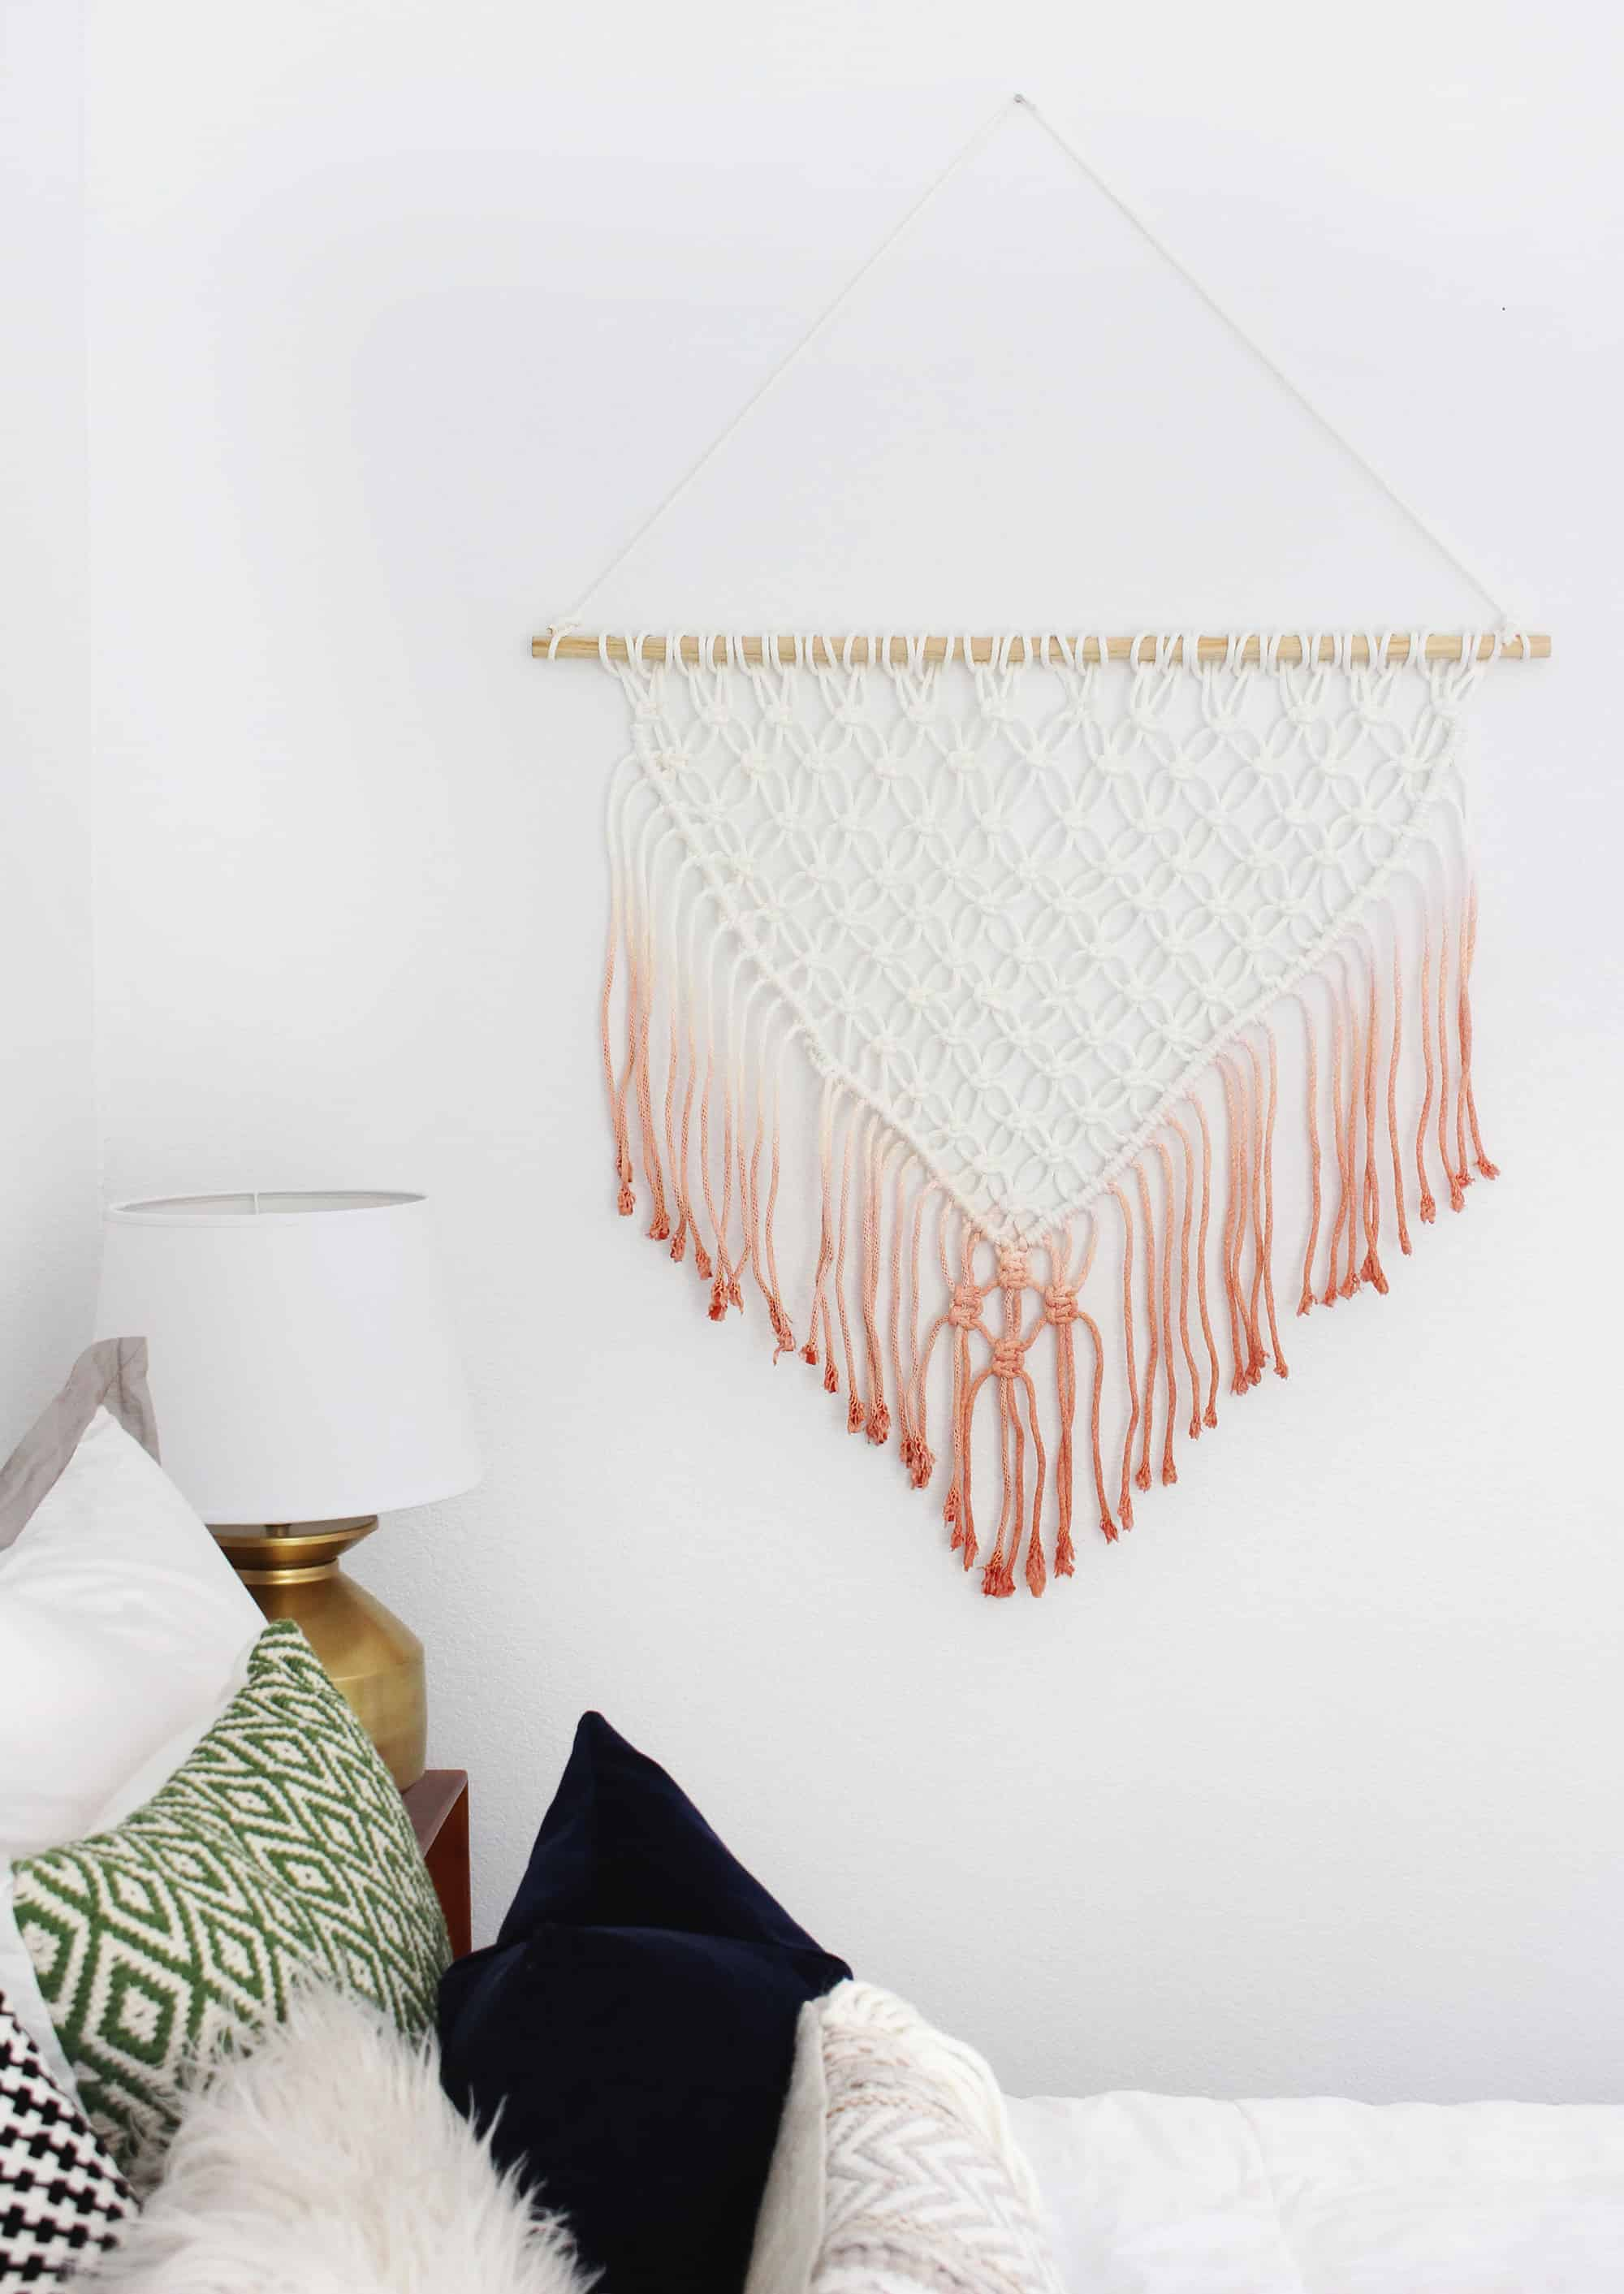 Diy macramé wall hanging